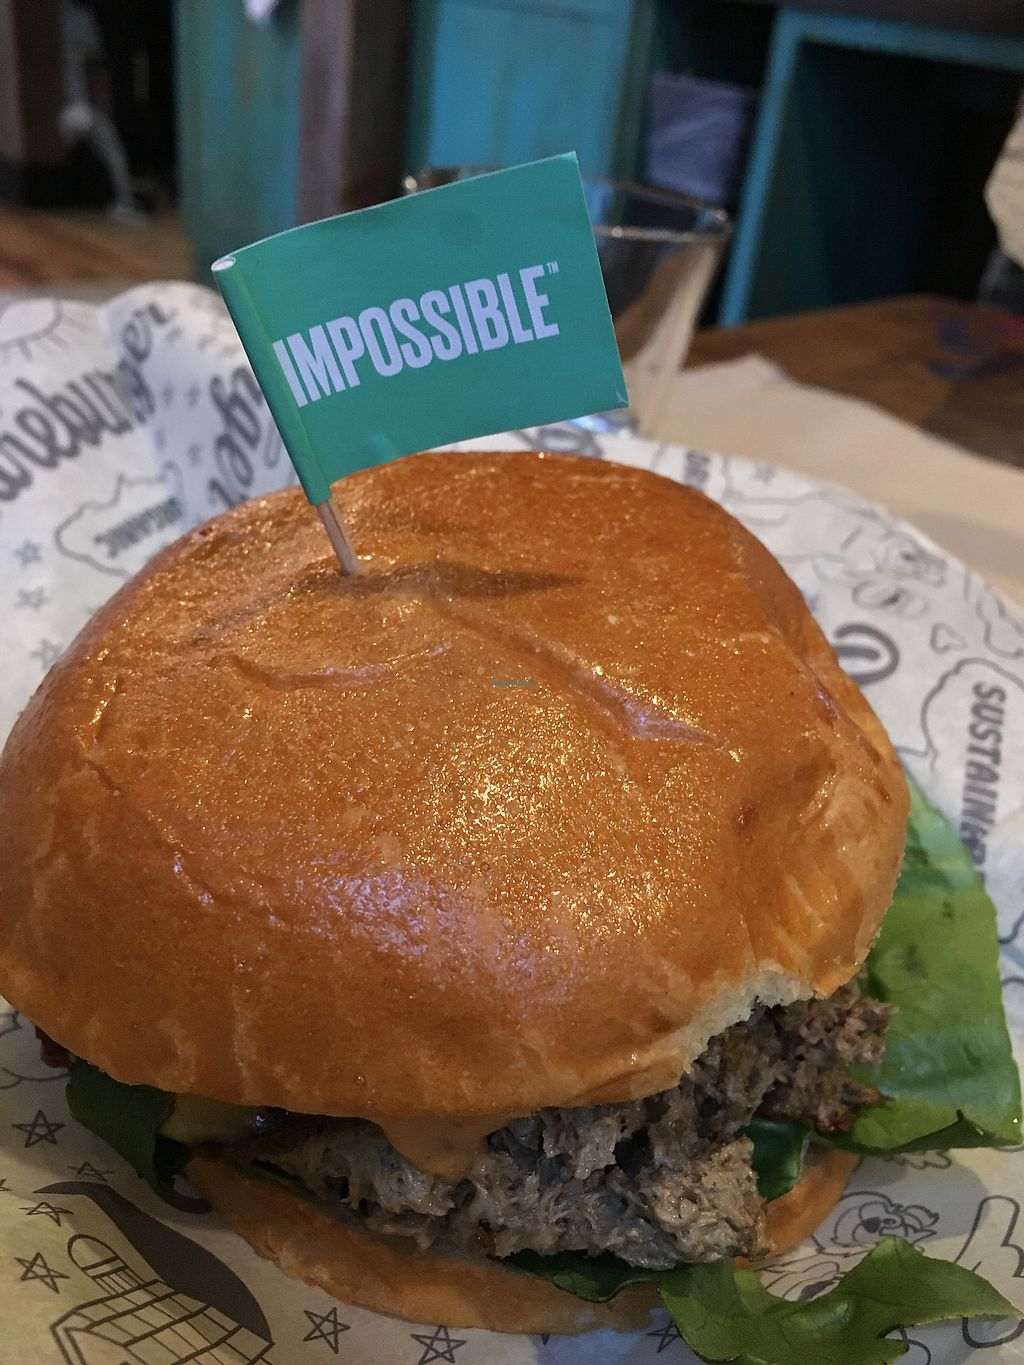 """Photo of Bareburger - Financial District  by <a href=""""/members/profile/NathanOriol"""">NathanOriol</a> <br/>Impossible Burger <br/> January 15, 2018  - <a href='/contact/abuse/image/55575/346737'>Report</a>"""